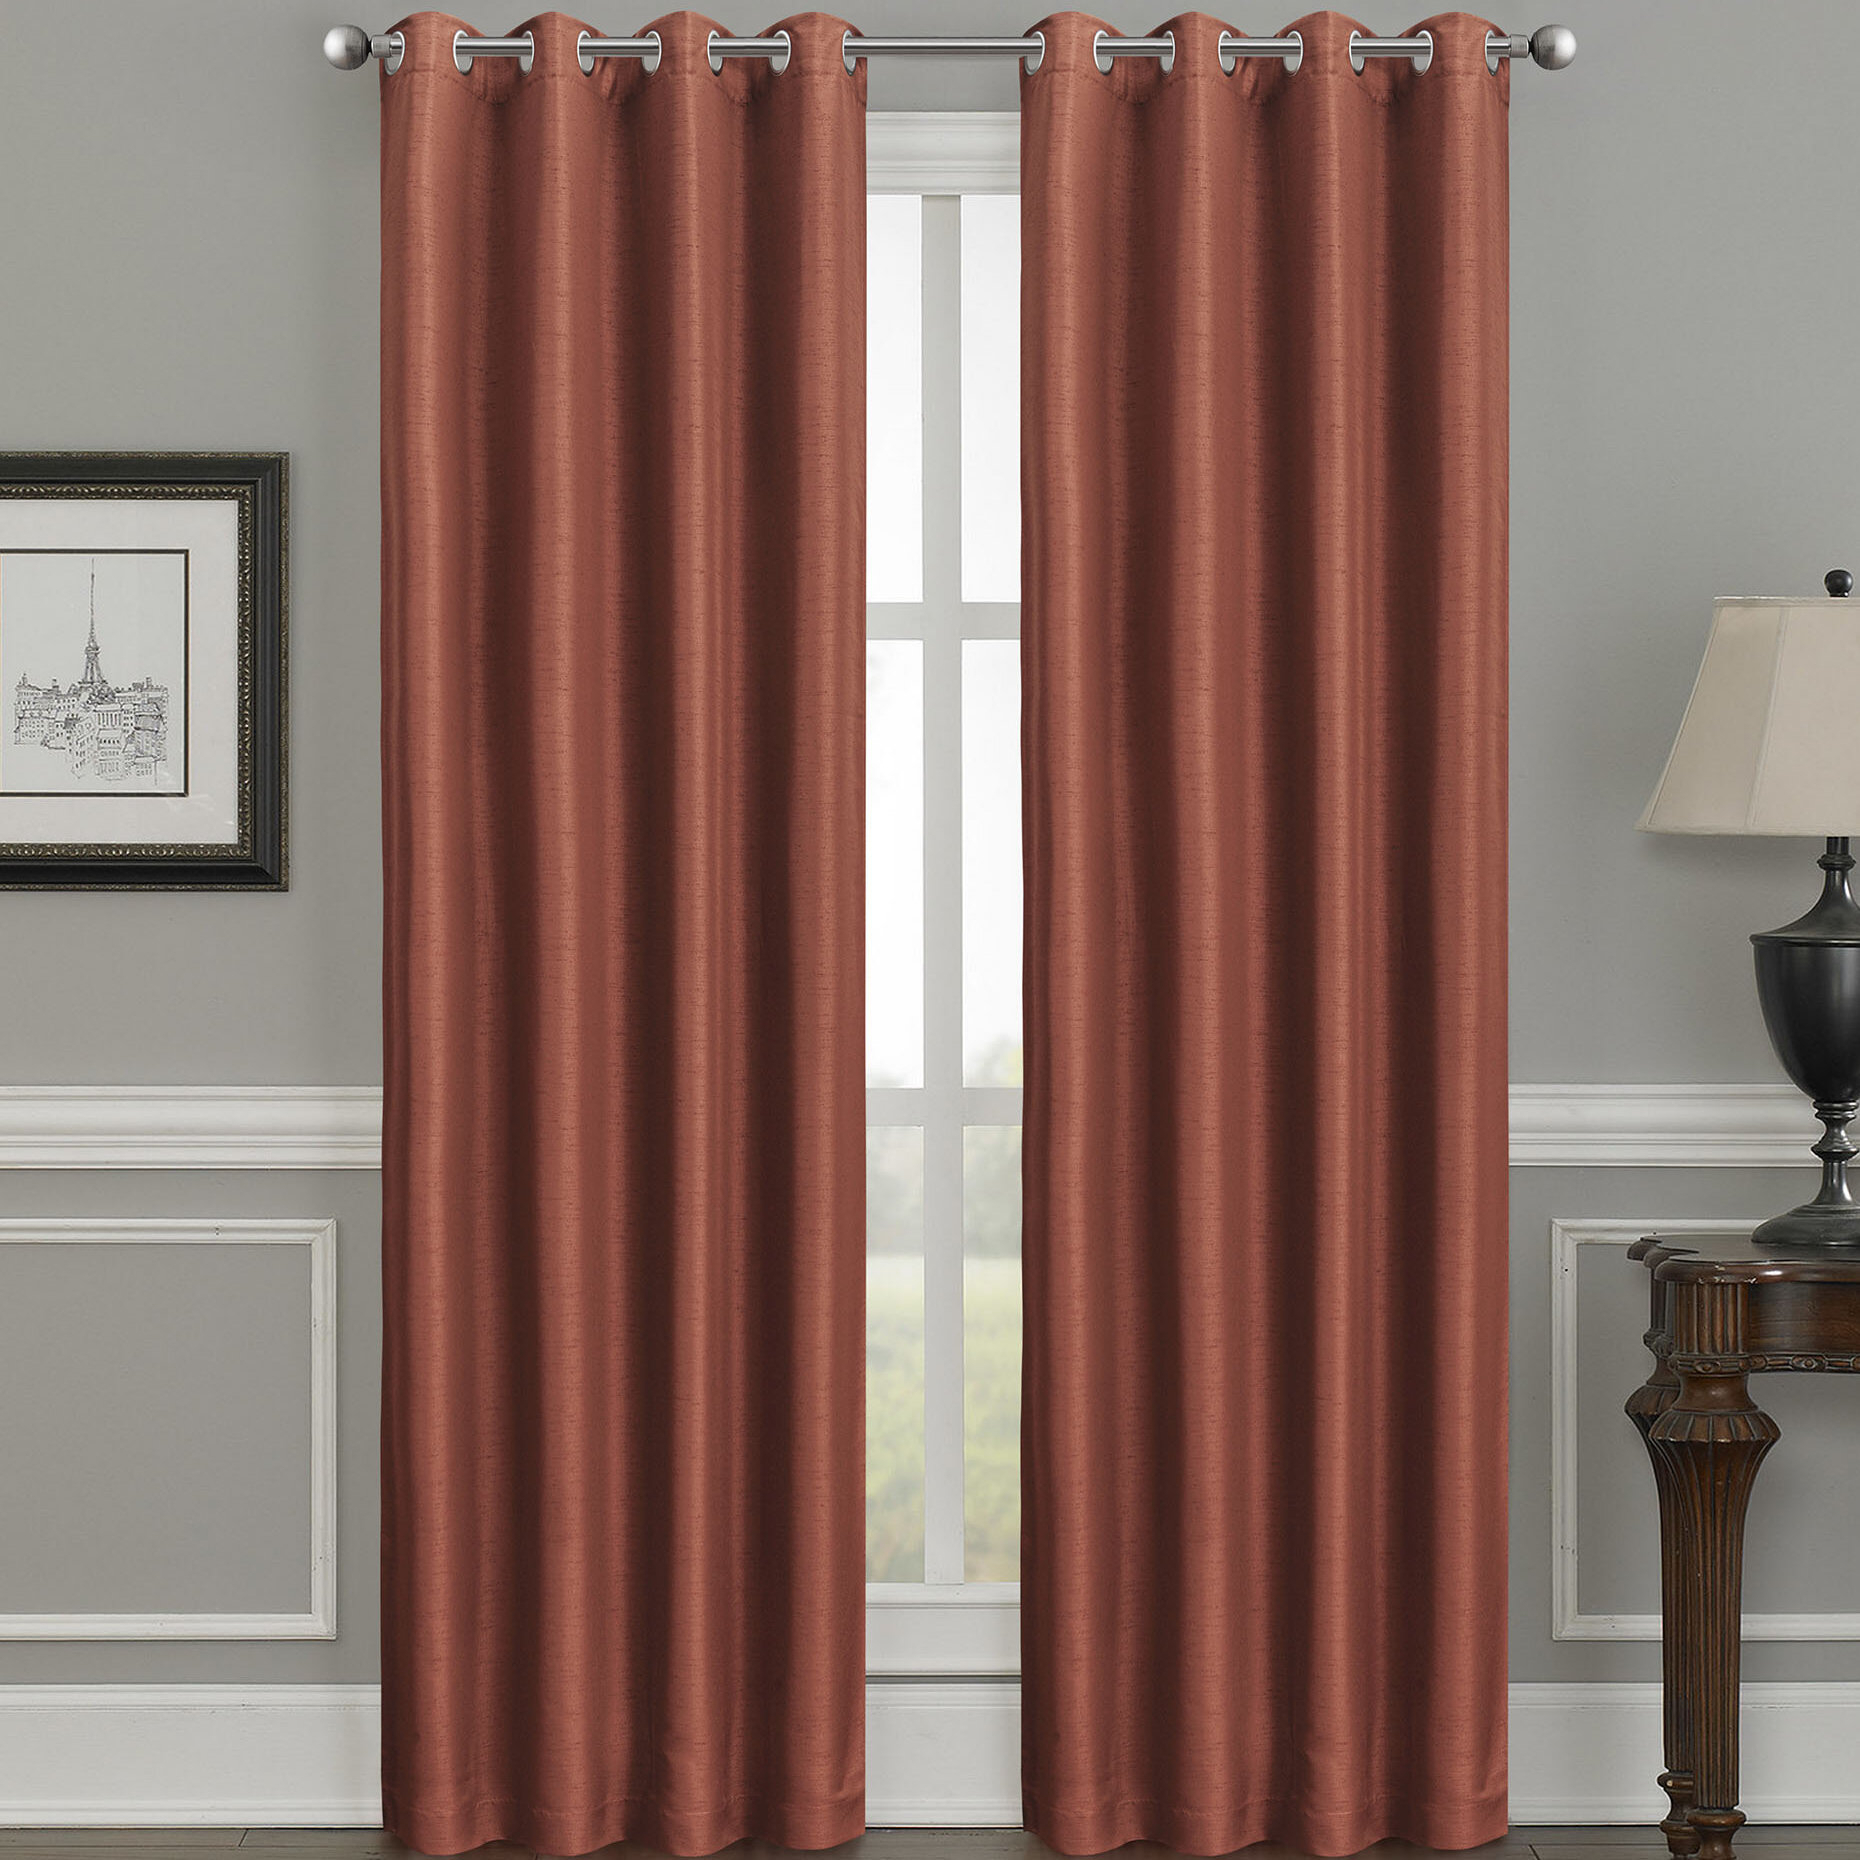 Cray Luxury Solid Color Room Darkening Thermal Grommet Single Curtain Panel Regarding Luxury Collection Faux Leather Blackout Single Curtain Panels (View 14 of 20)